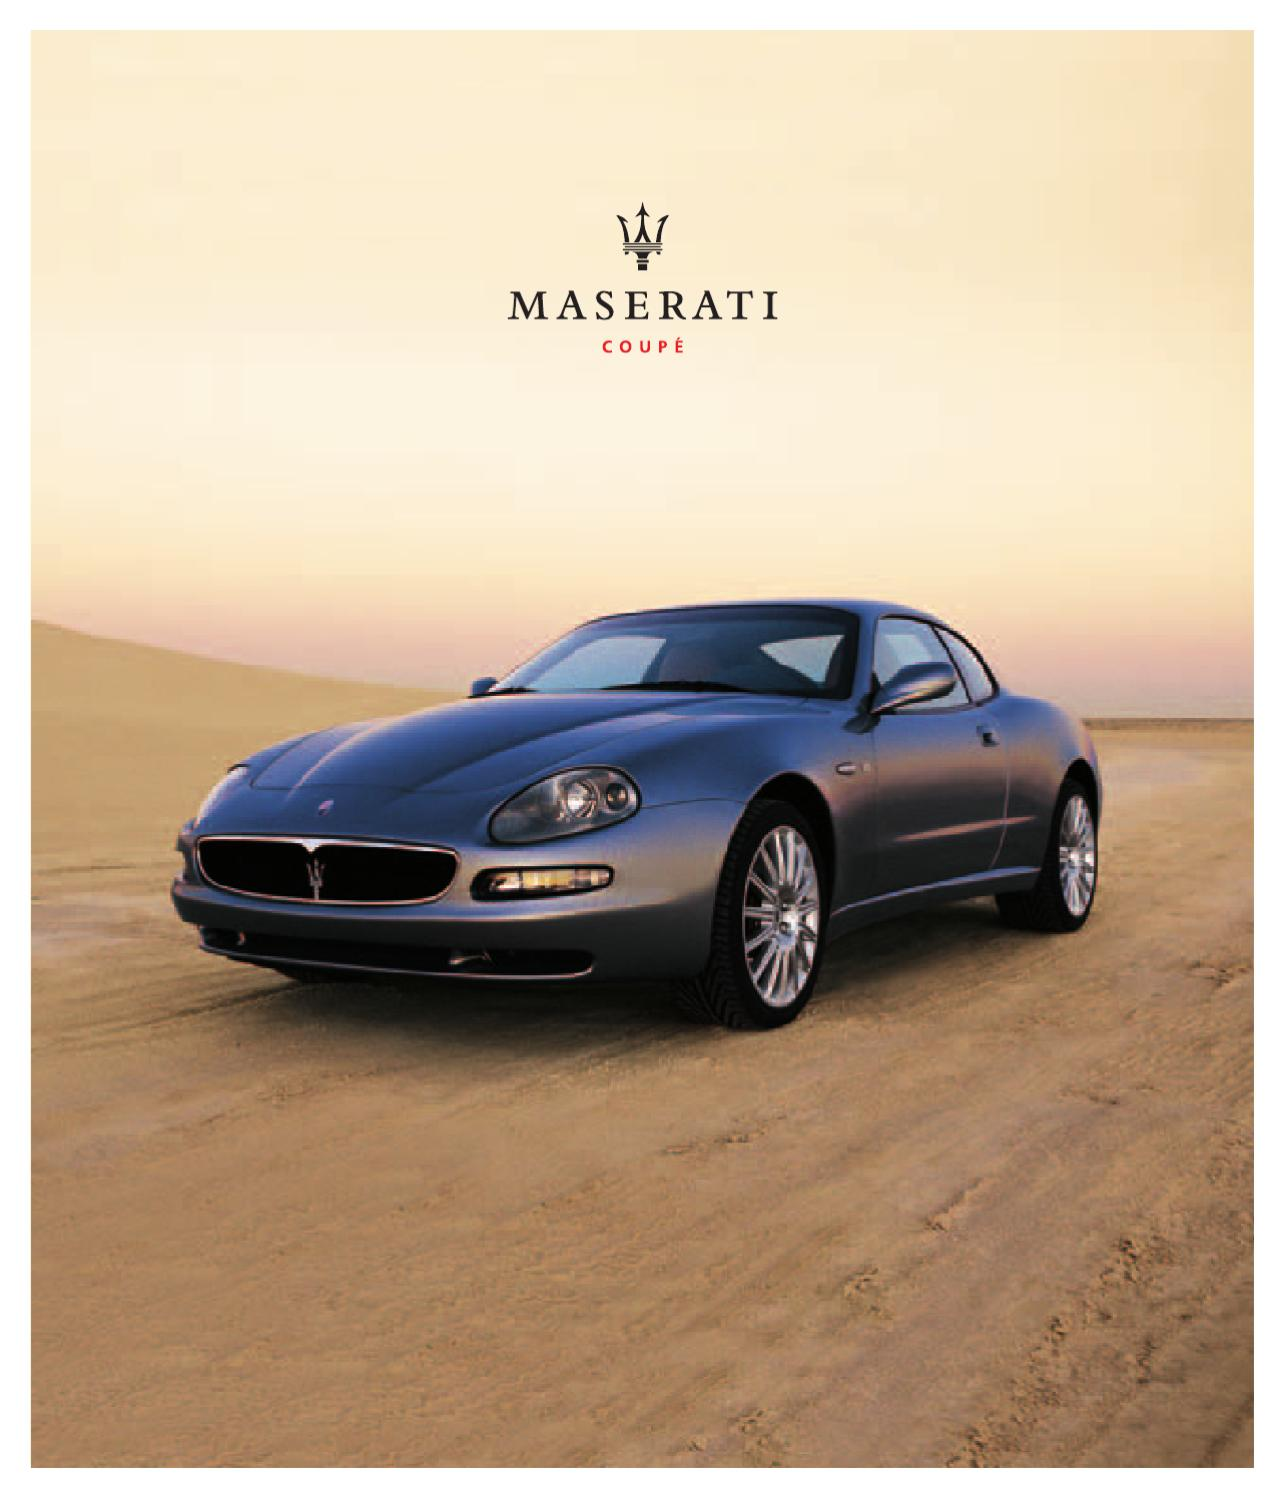 2003 Maserati Coupe Brochure By Ted Sluymer